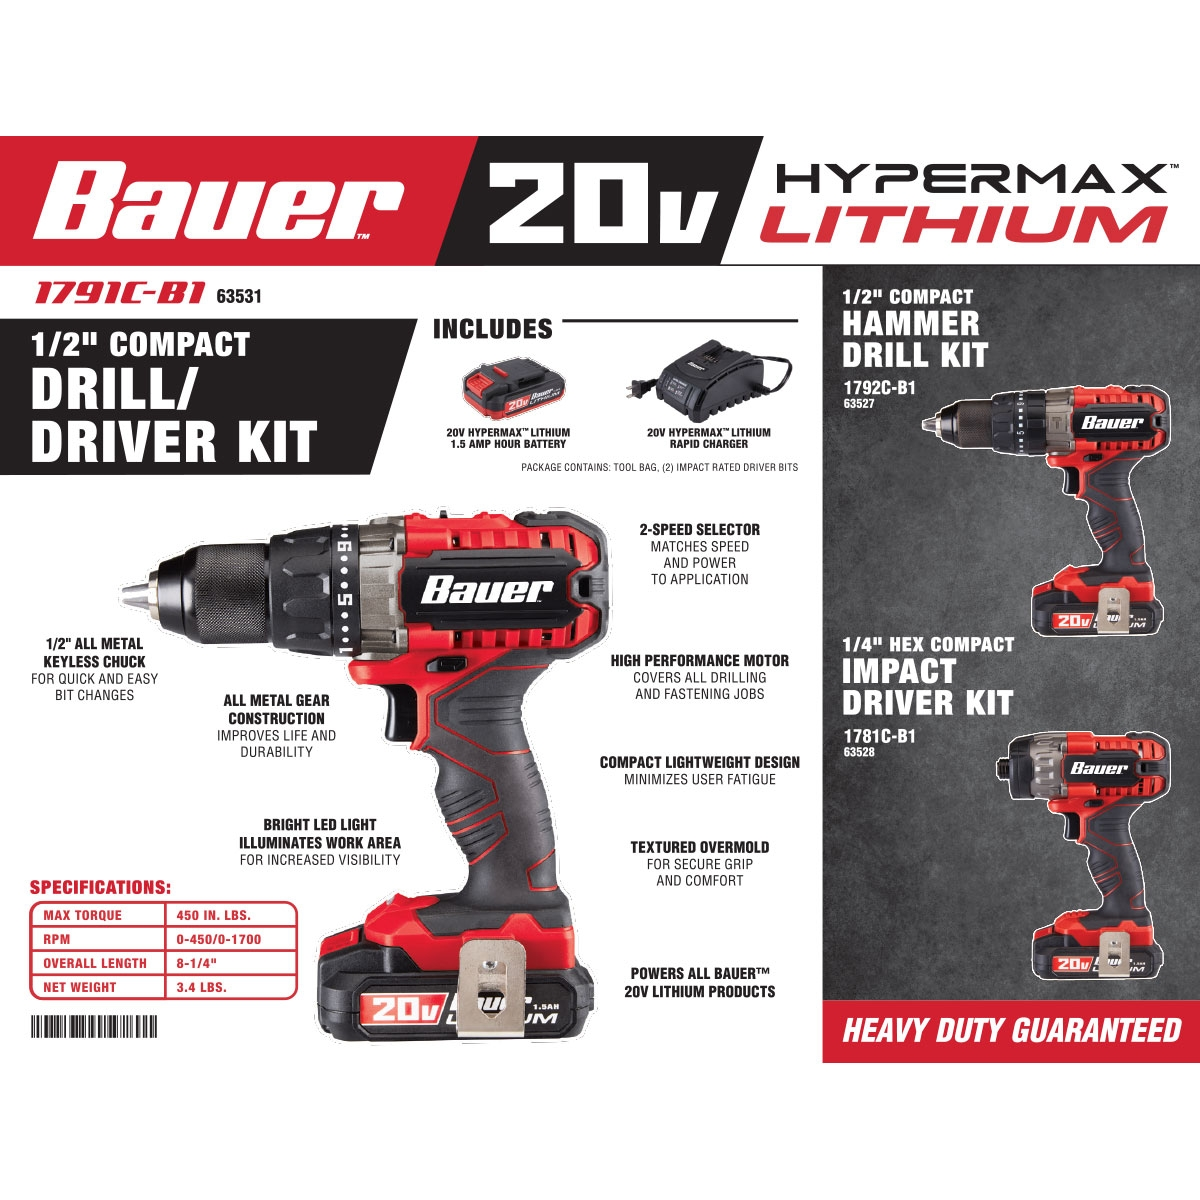 20v Hypermax Lithium 12 In Drilldriver Kit